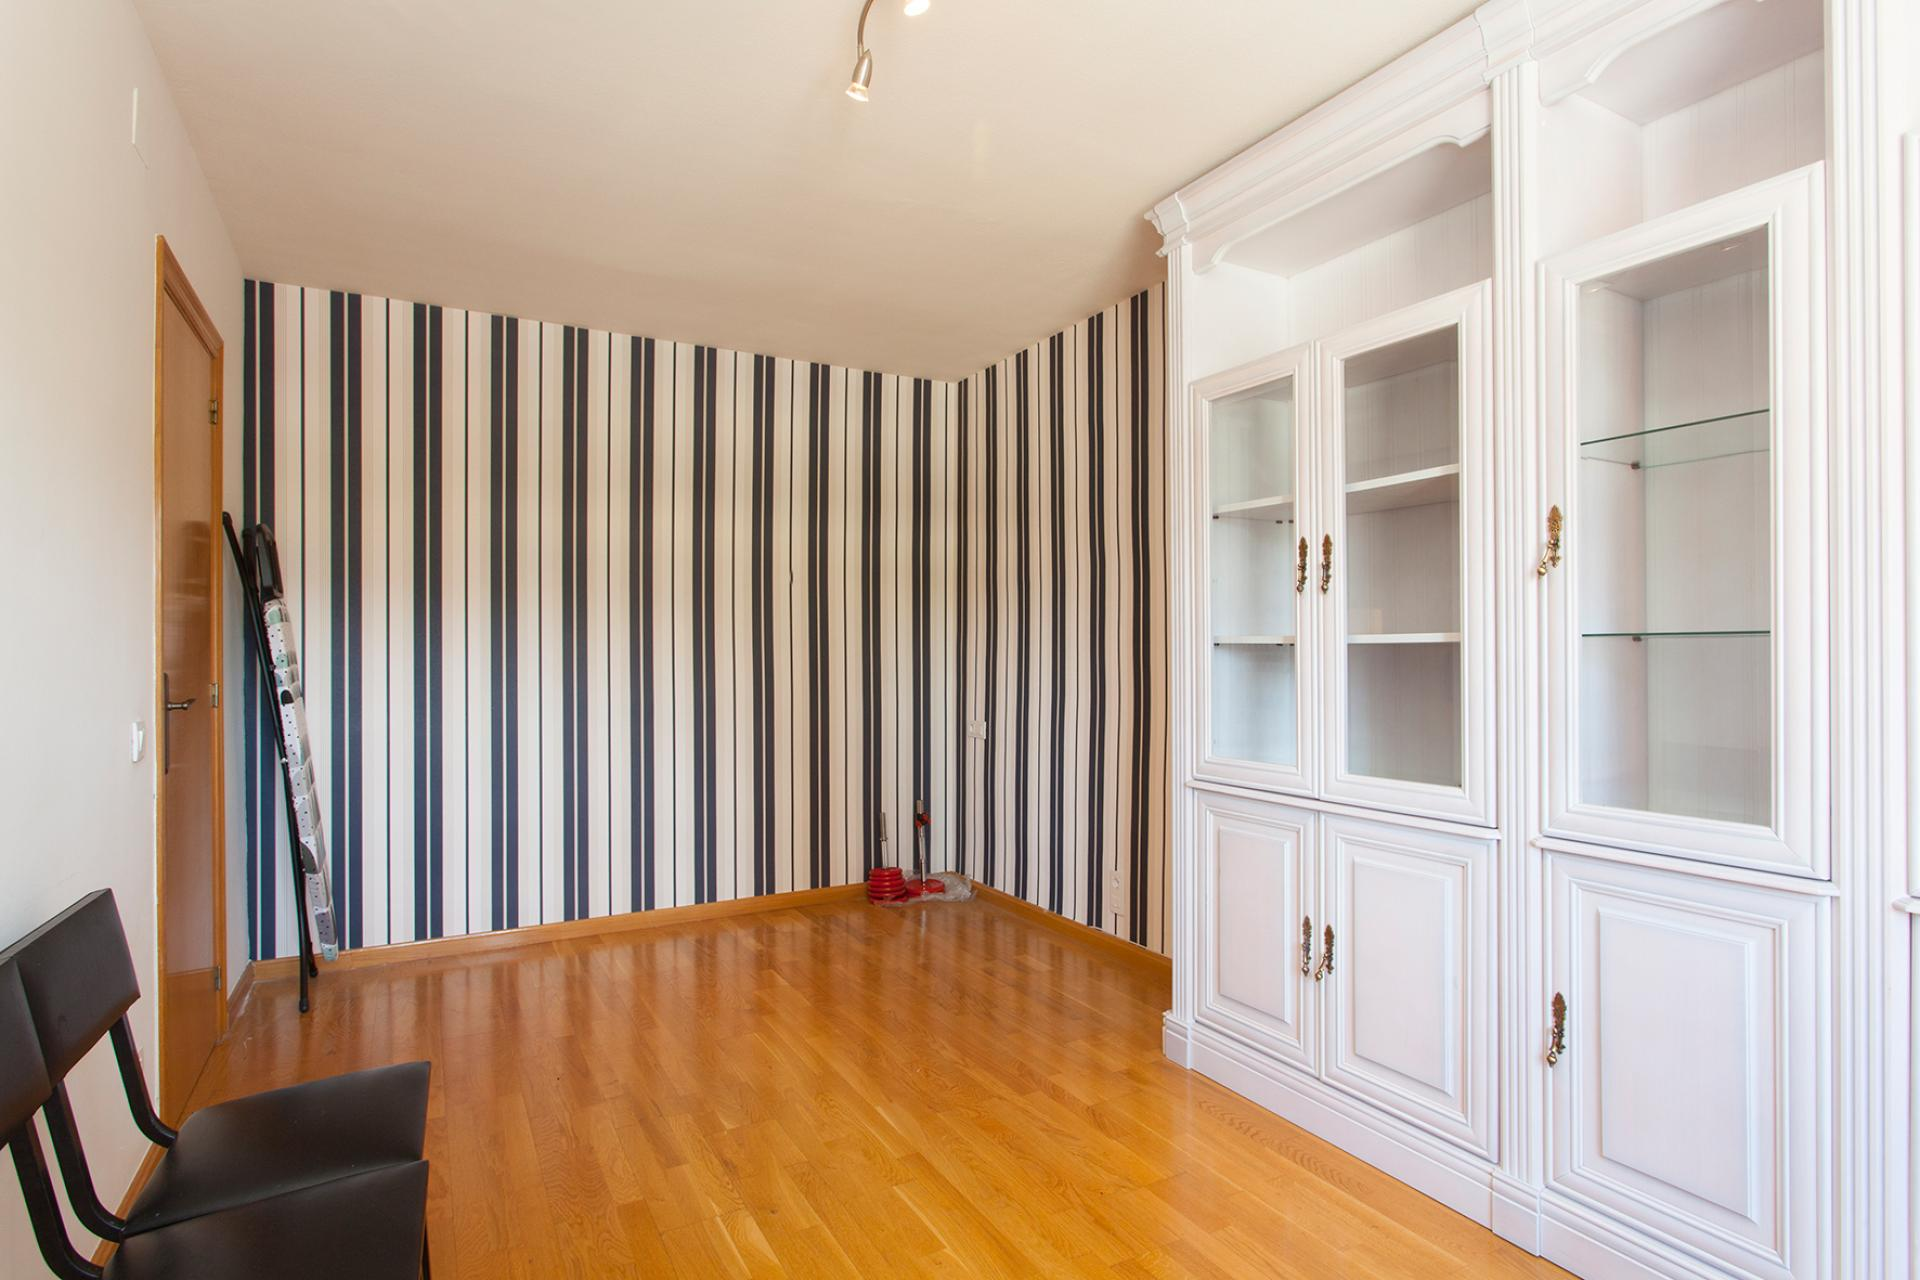 Apartment for rent barcelona les corts sabino arana gv de carles iii - Sabino arana barcelona ...